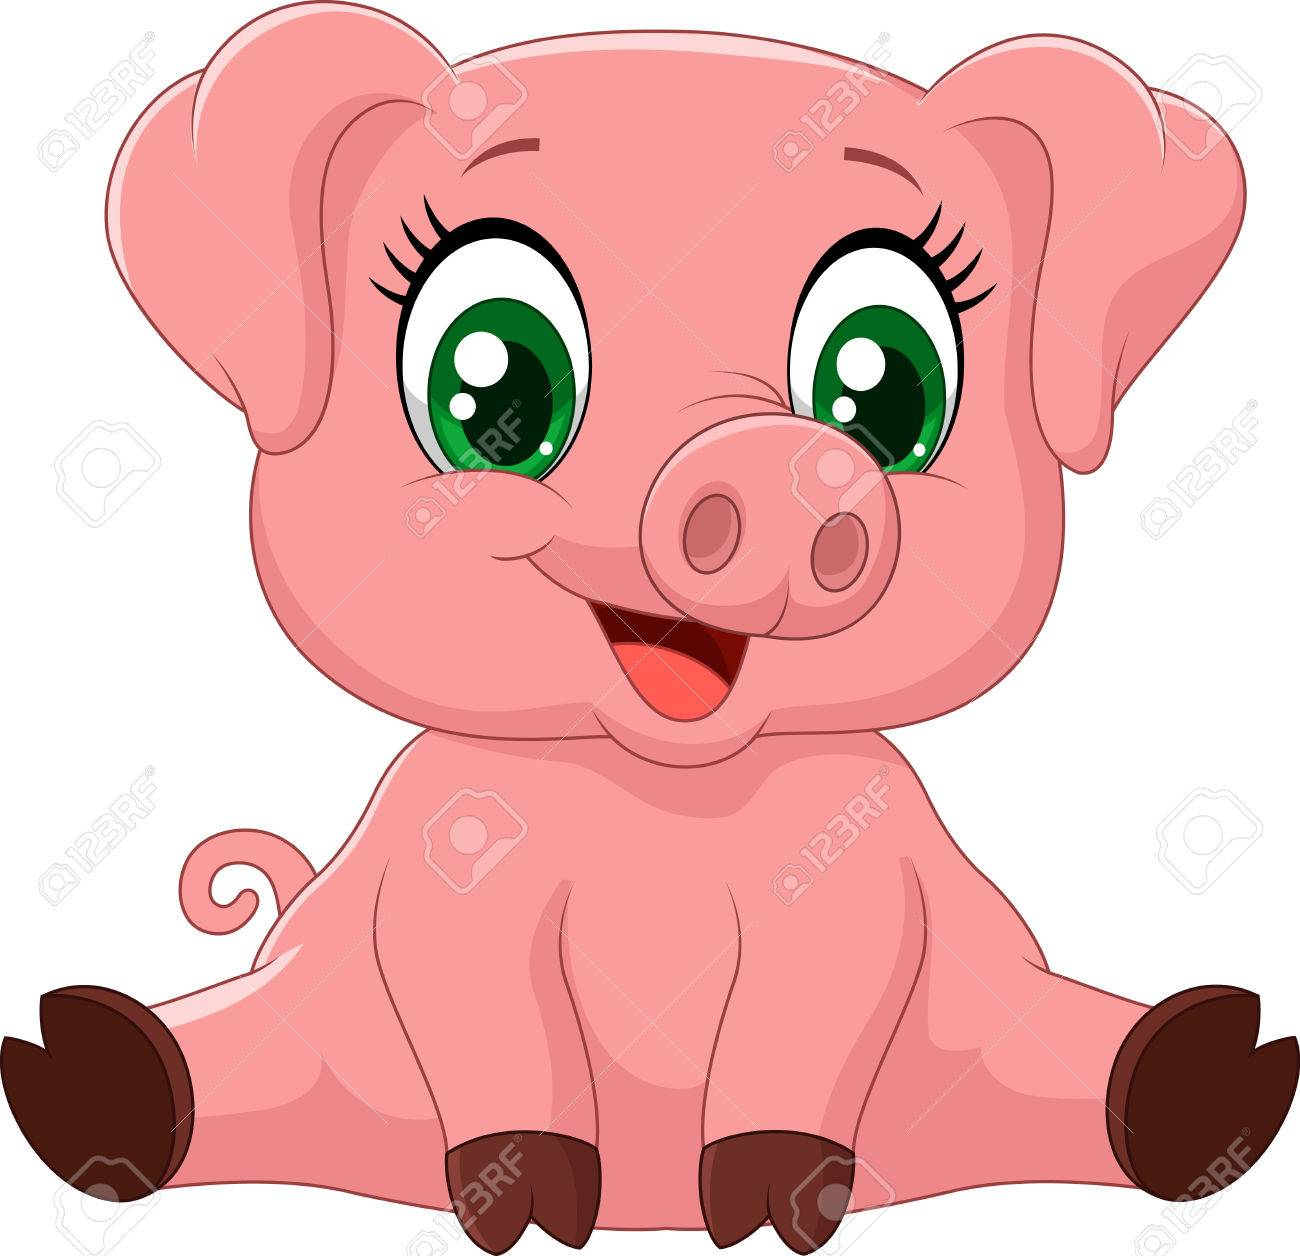 cartoon adorable baby pig vector illustration royalty free cliparts rh 123rf com pig factories in china pig factory youtube